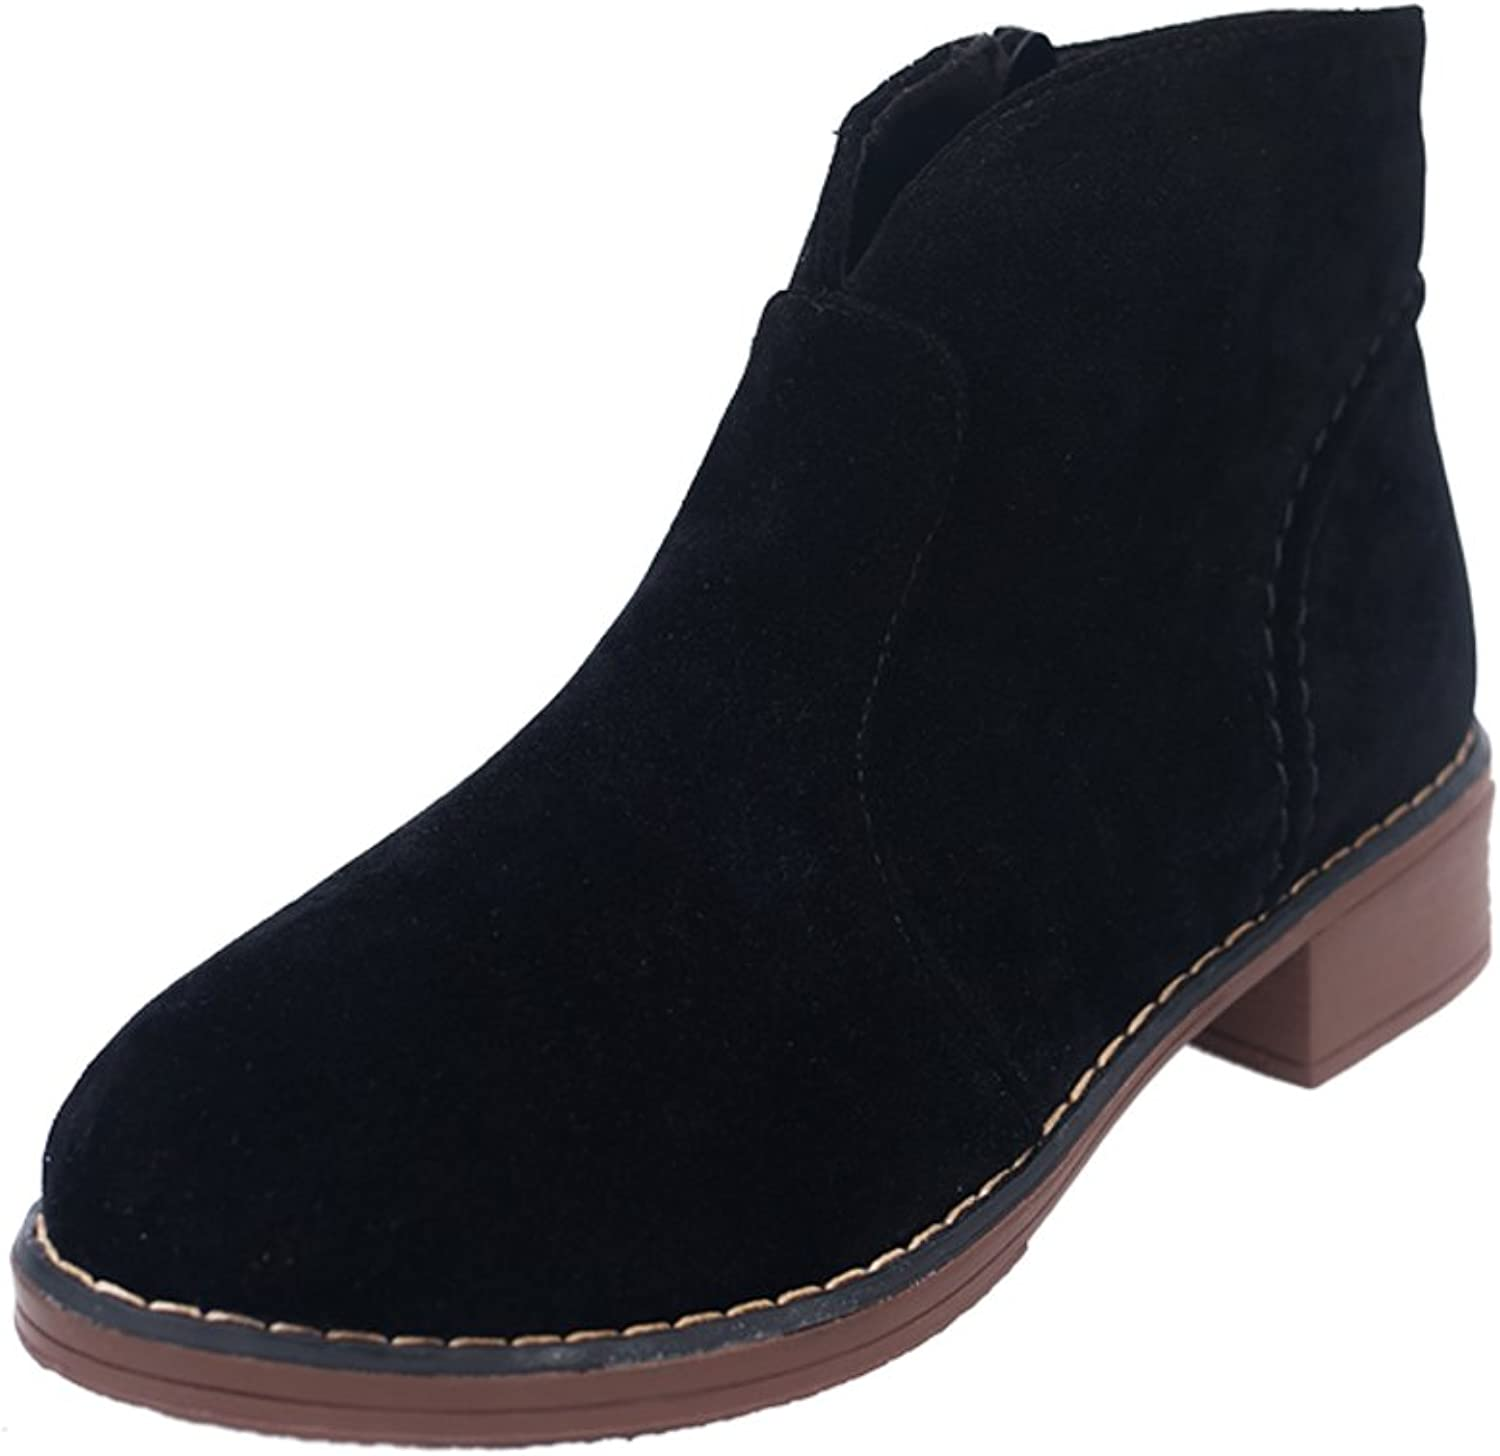 RHFDVGDS spring and autumn Lady boots Thicken Martin boots Fashion in Europe and wind bare boots high heel suede boots